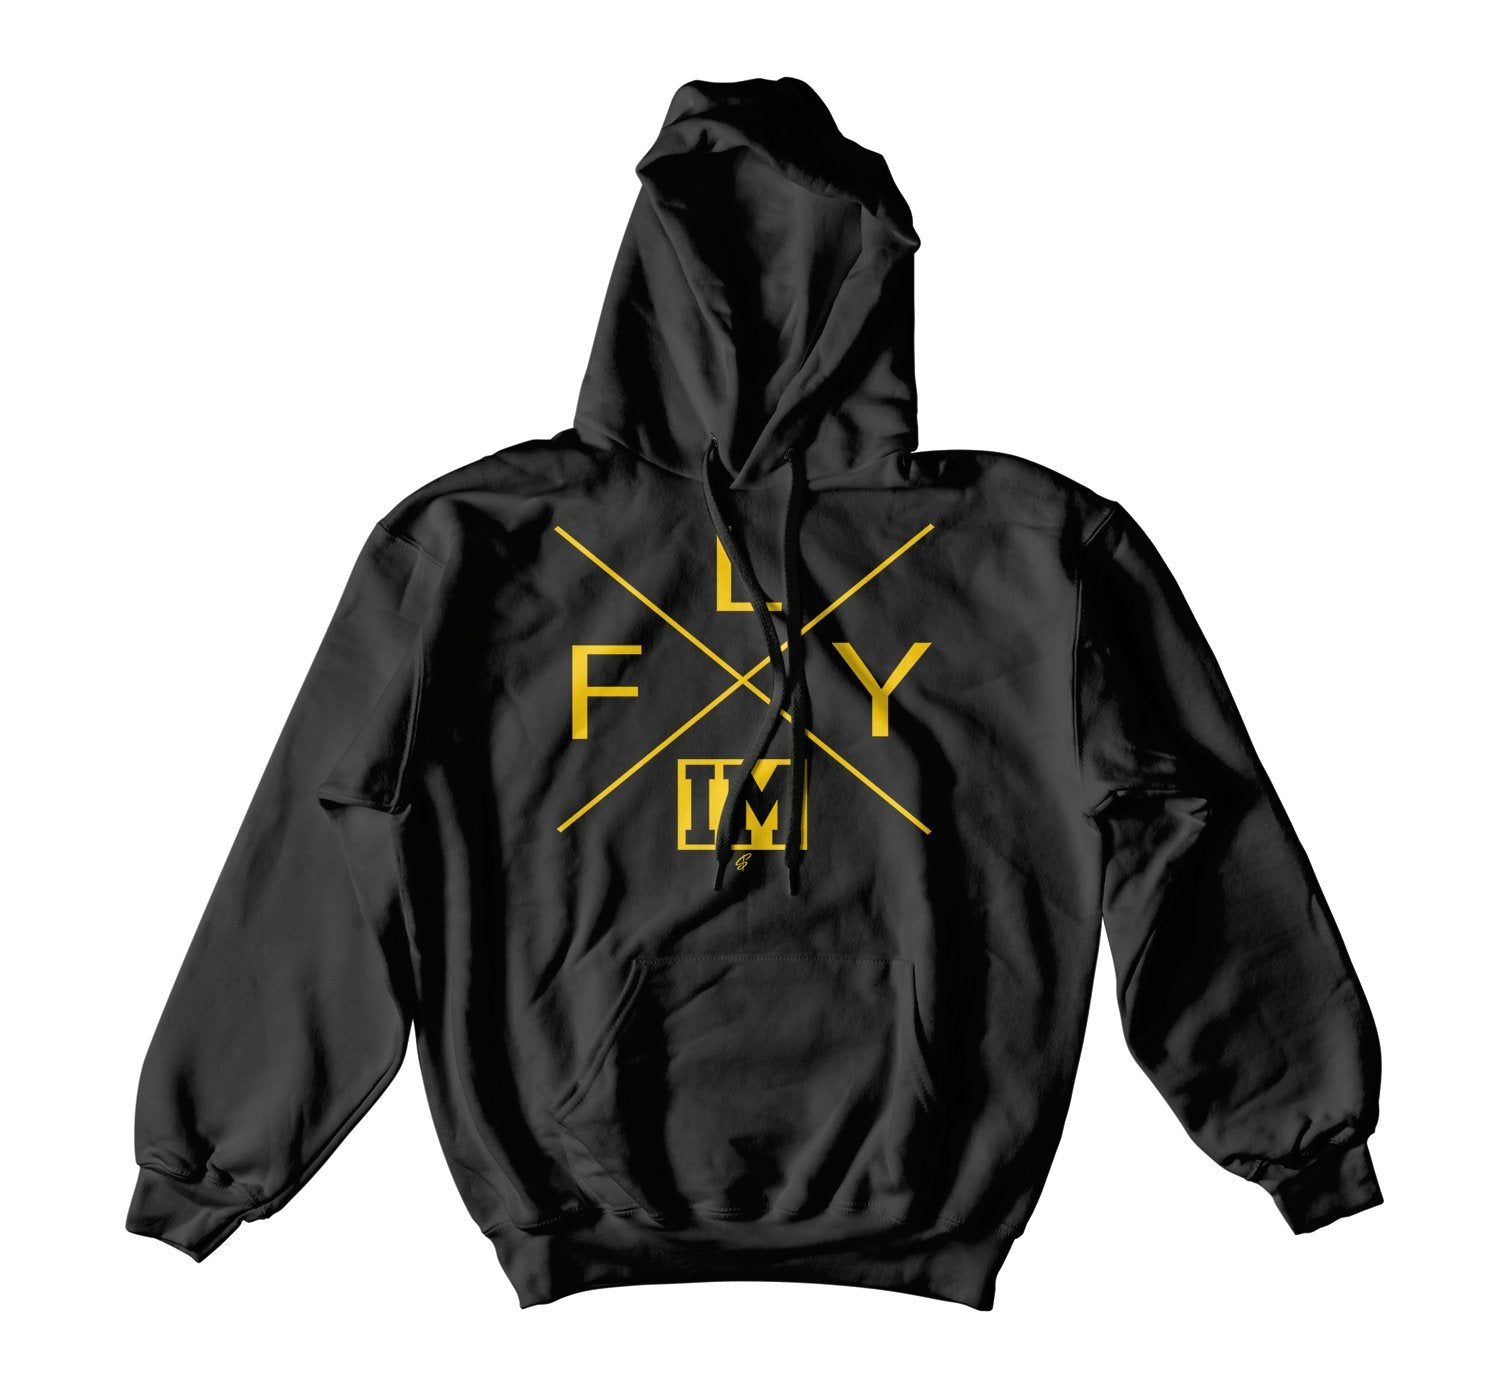 Flyest Hoody Collection to match fit for Jordan 12 Taxi's